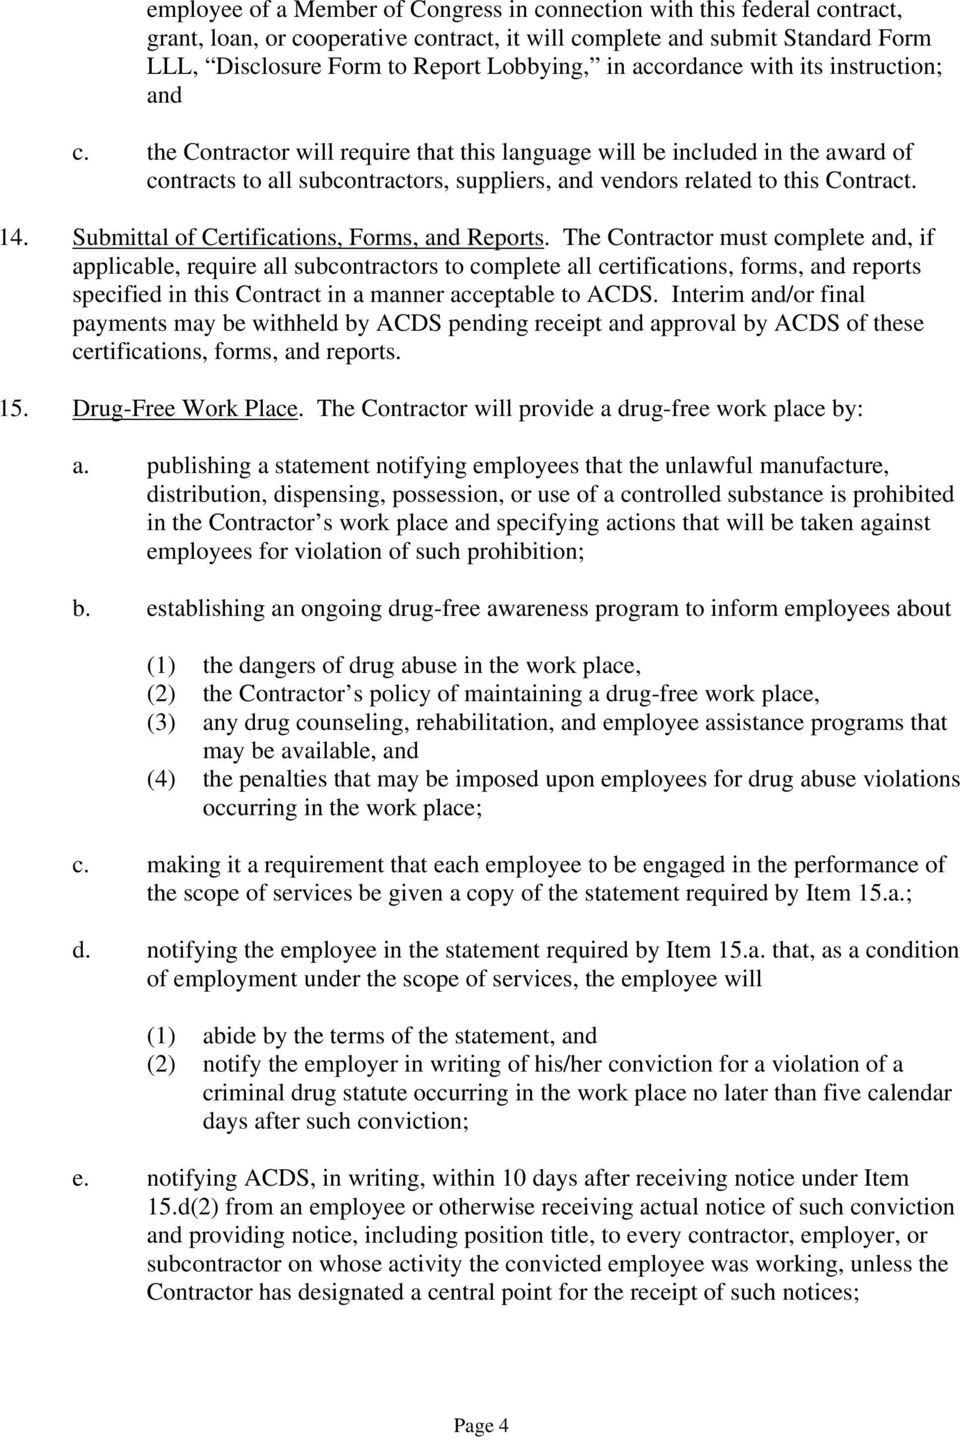 the Contractor will require that this language will be included in the award of contracts to all subcontractors, suppliers, and vendors related to this Contract. 14.